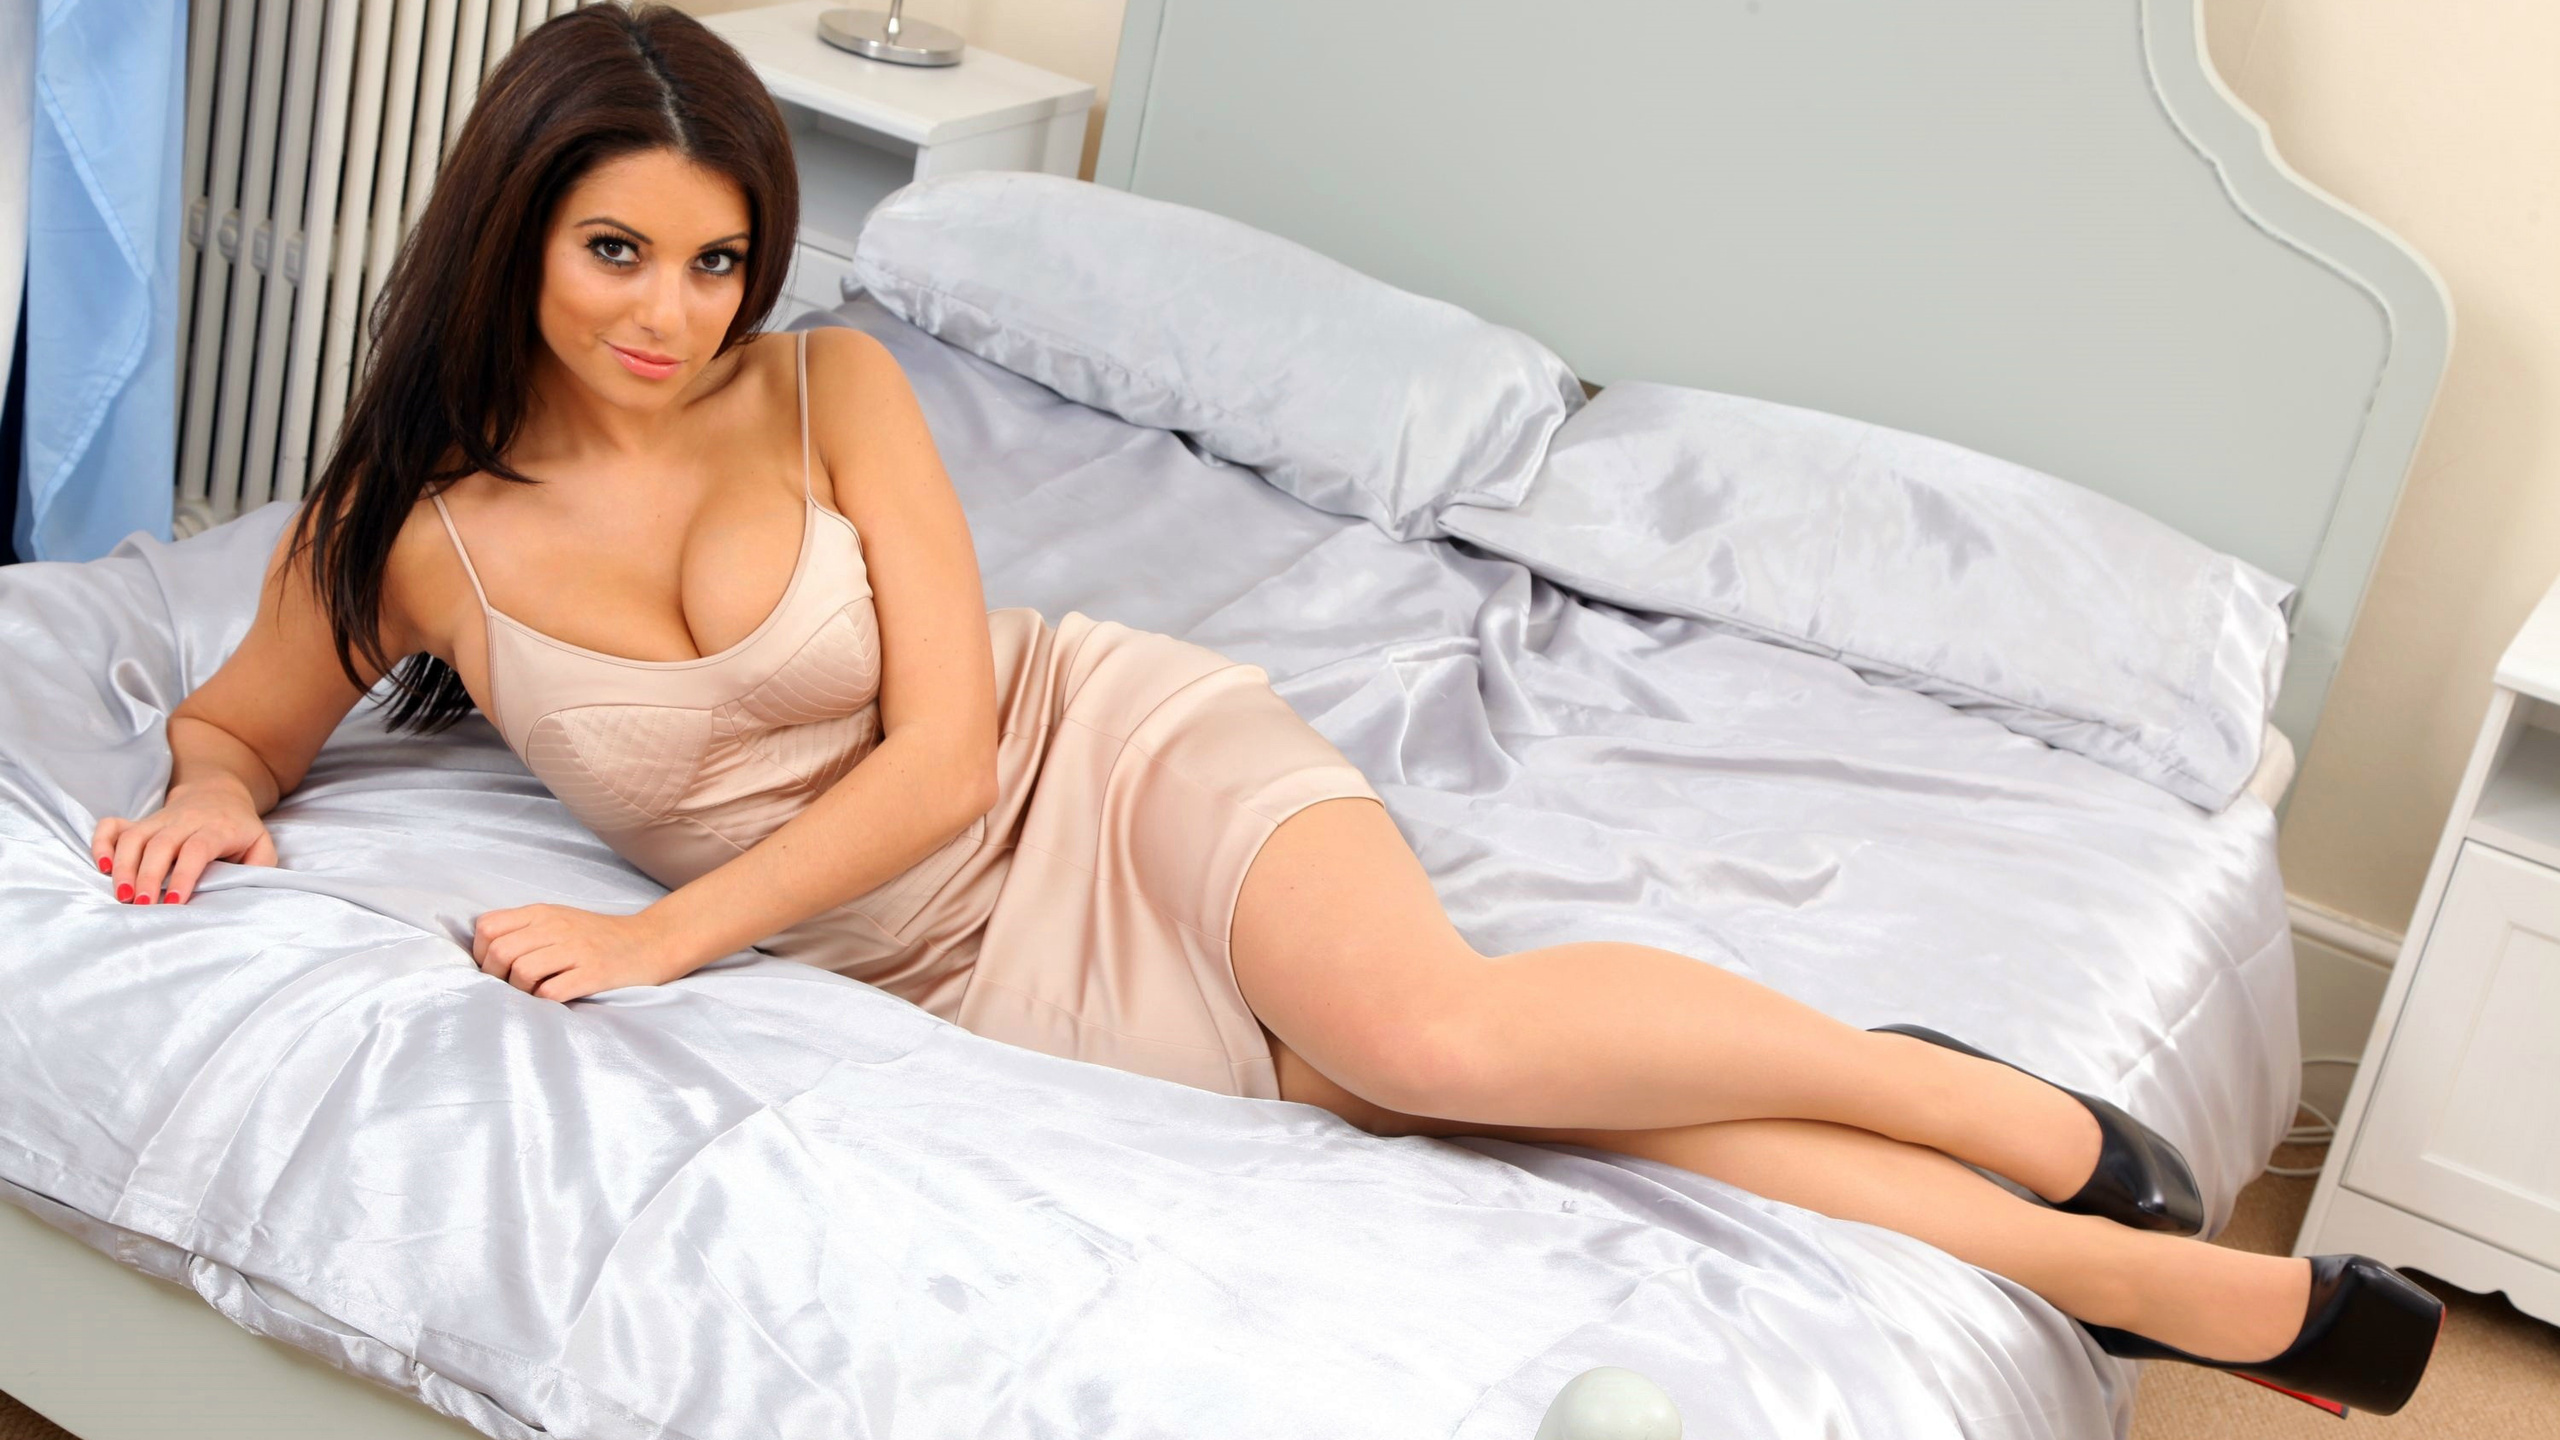 Charlotte Springer HD Wallpaper